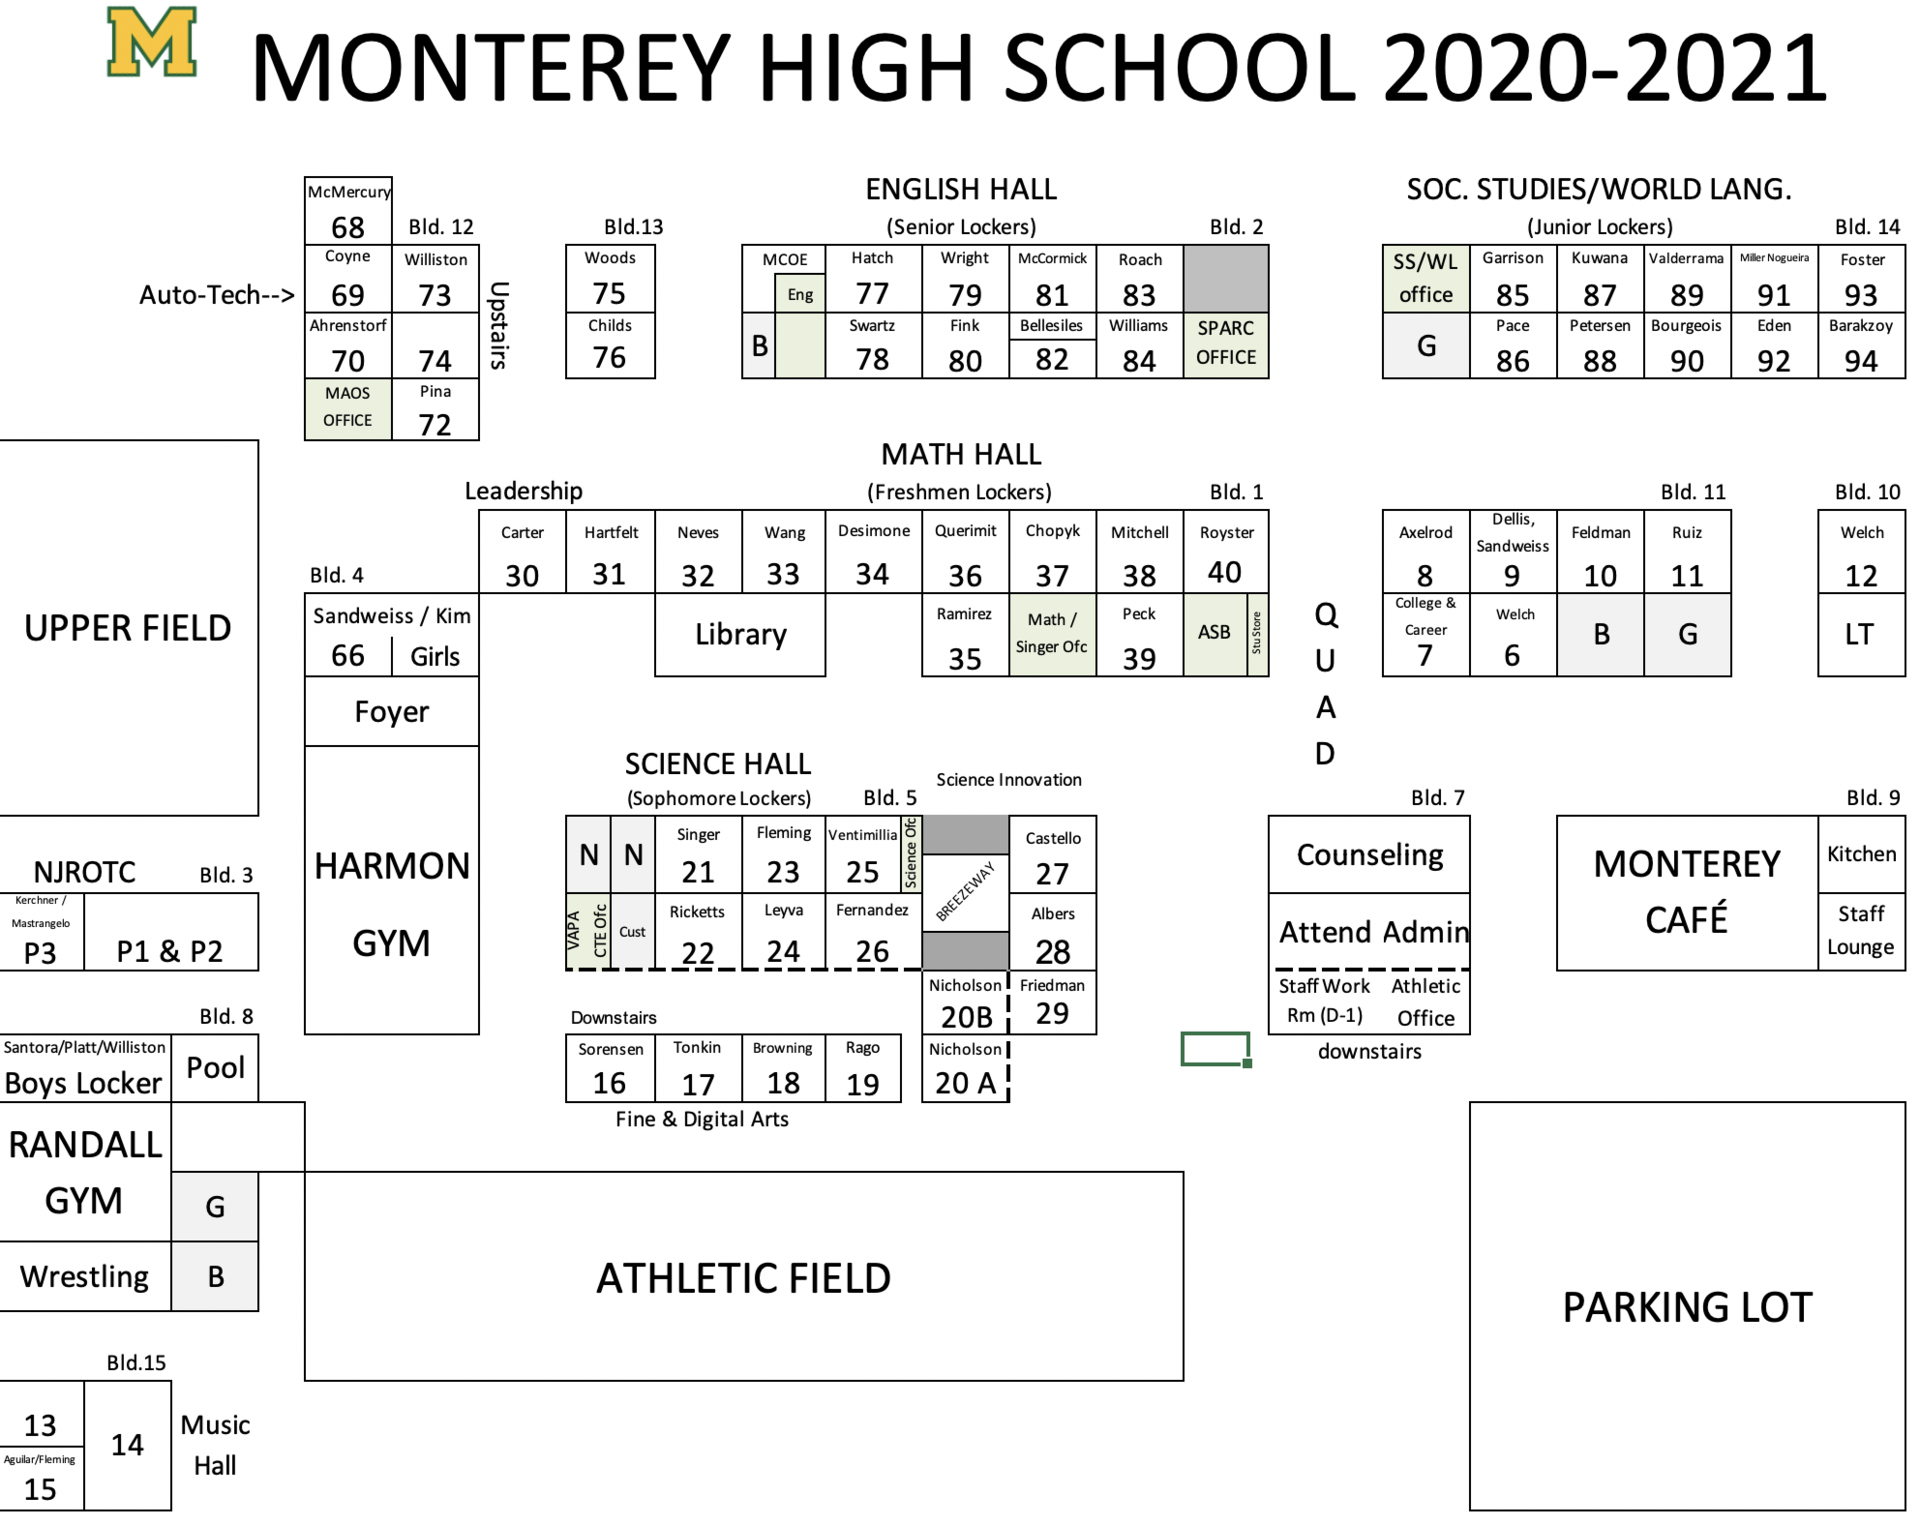 MHS Campus Map